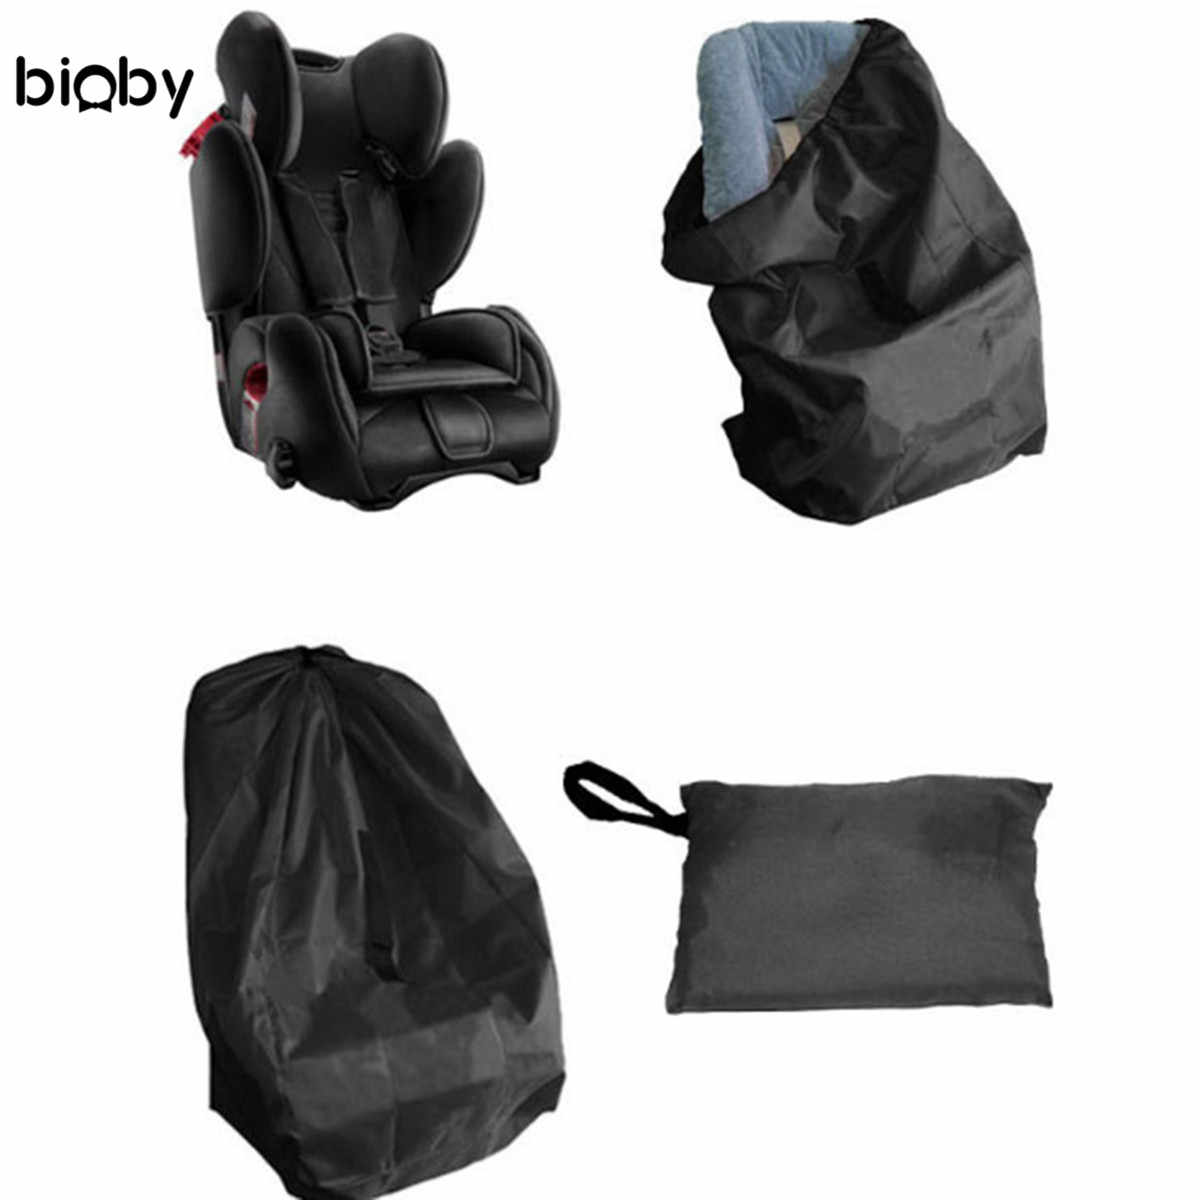 Fabulous Baby Portable Car Seat Safety Seat Dust Protection Cover Caraccident5 Cool Chair Designs And Ideas Caraccident5Info